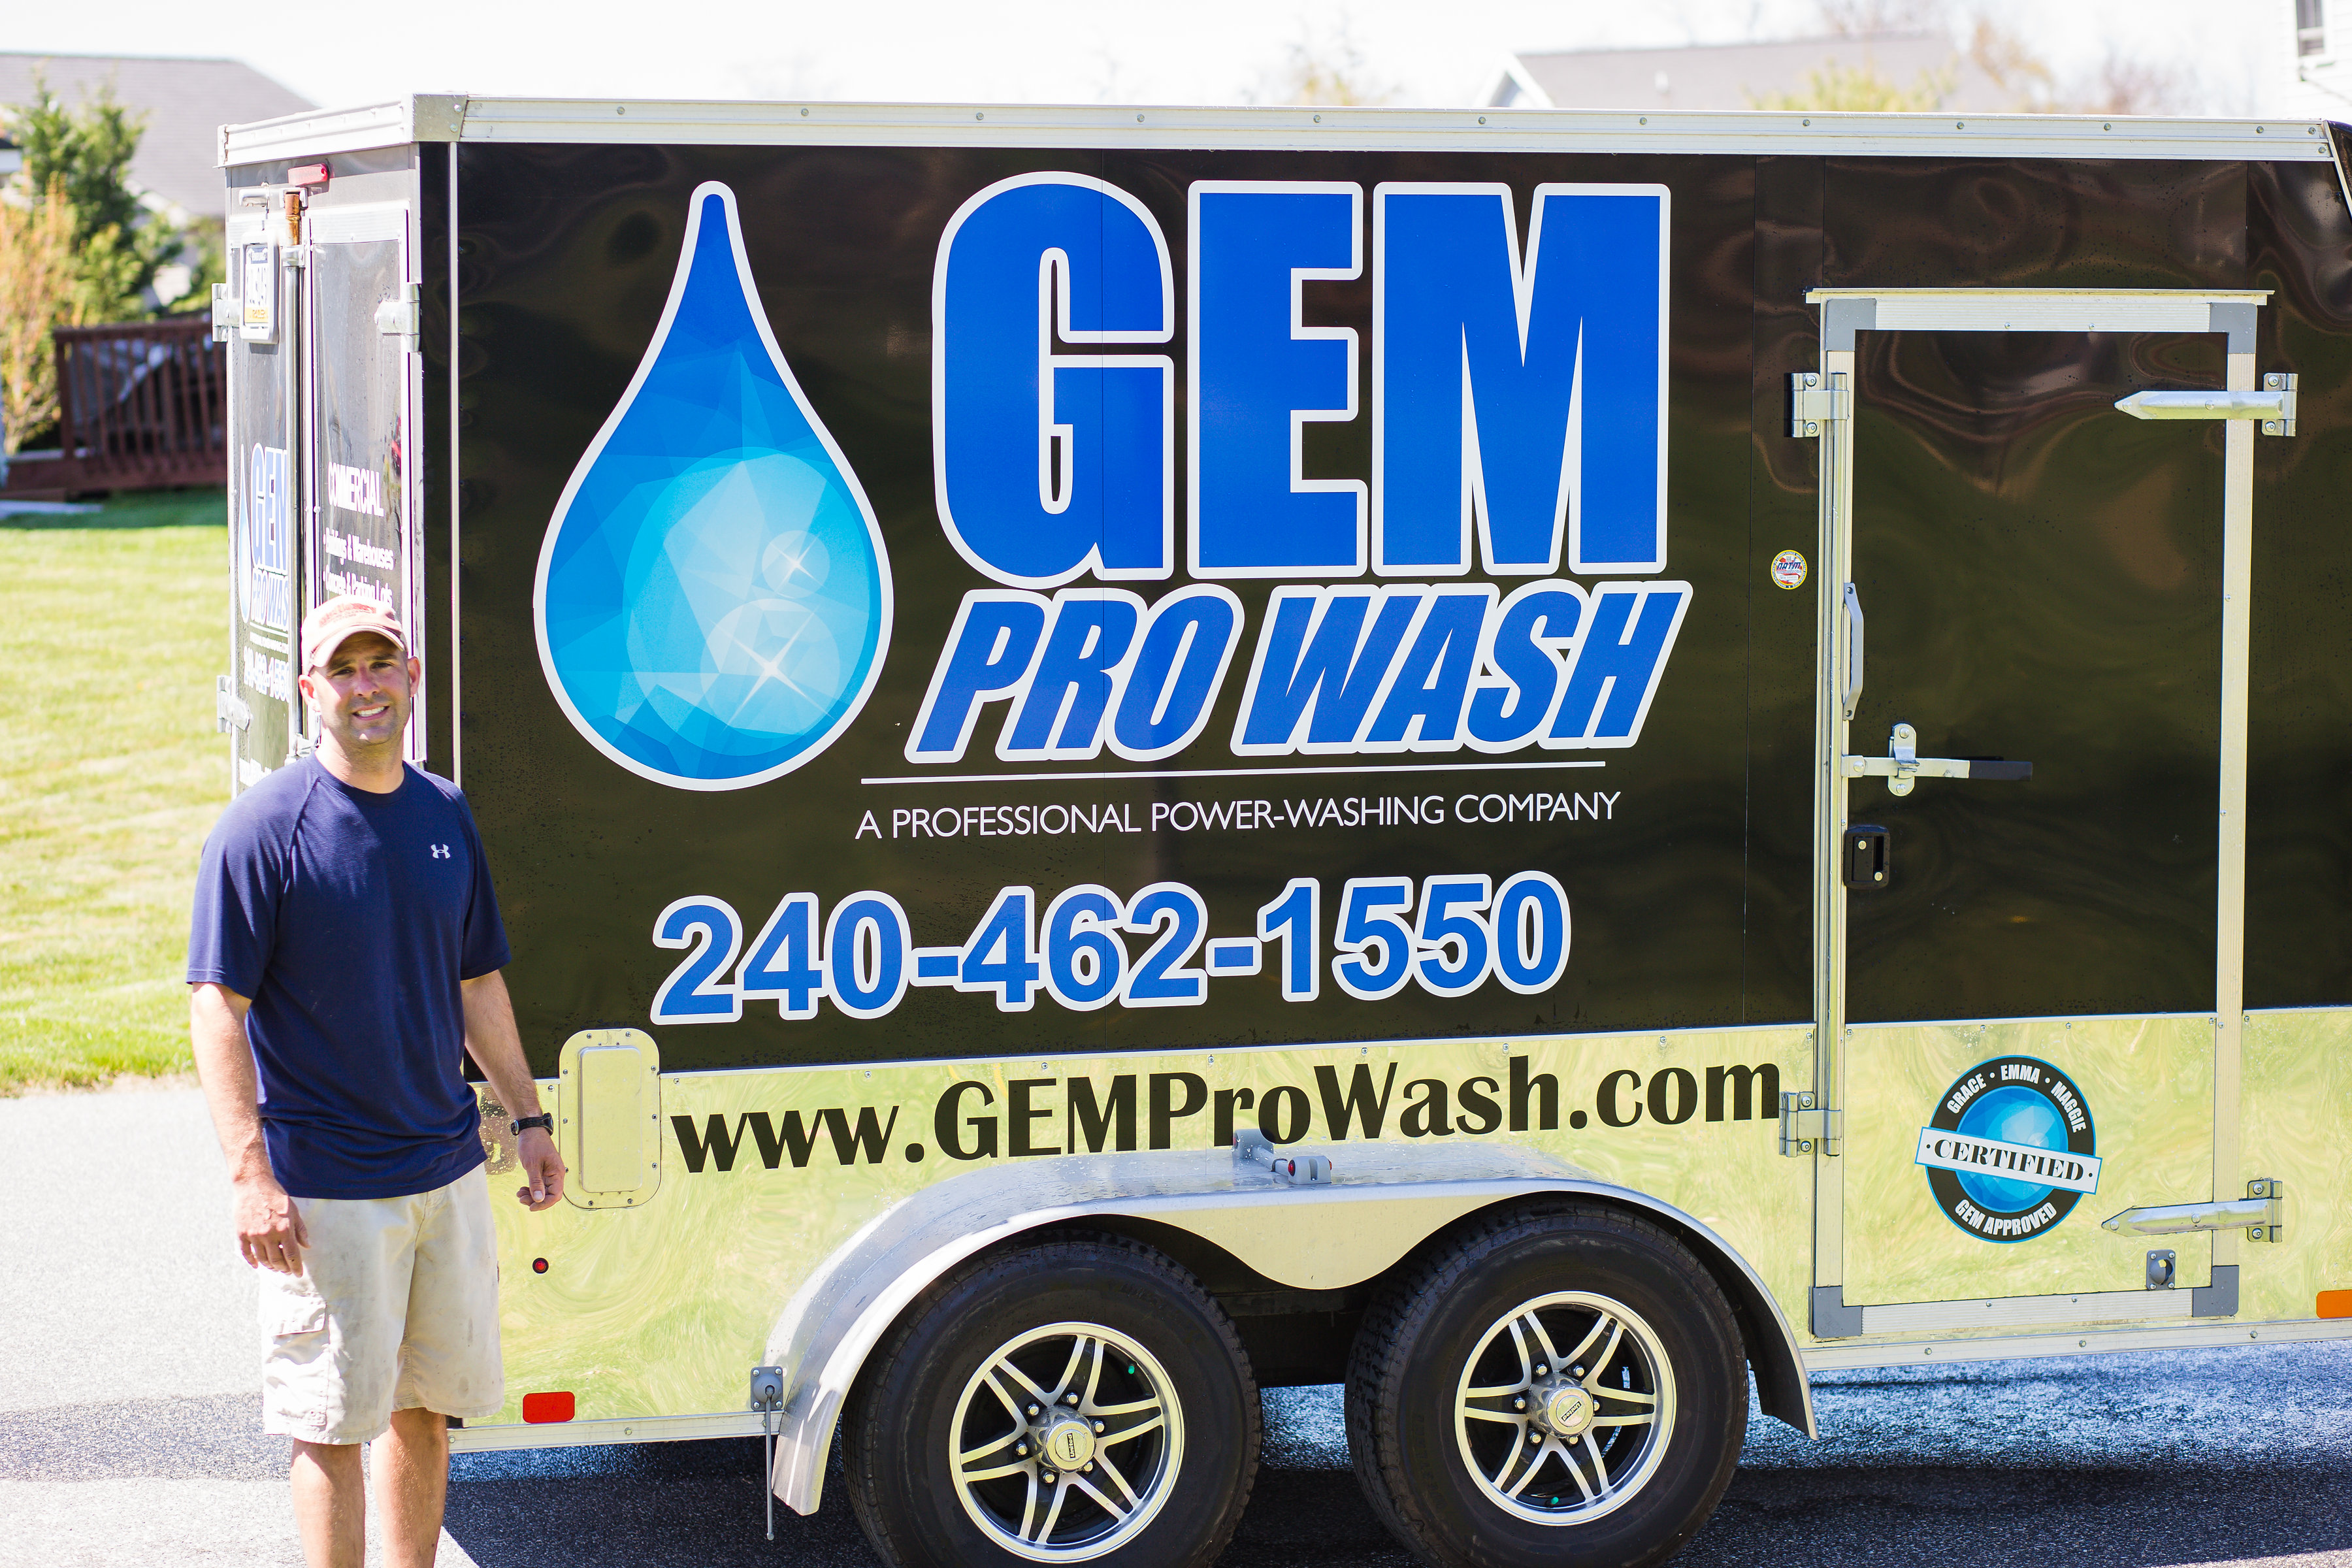 Gem Pro Wash | Deck Cleaning Contractor in Hagerstown MD